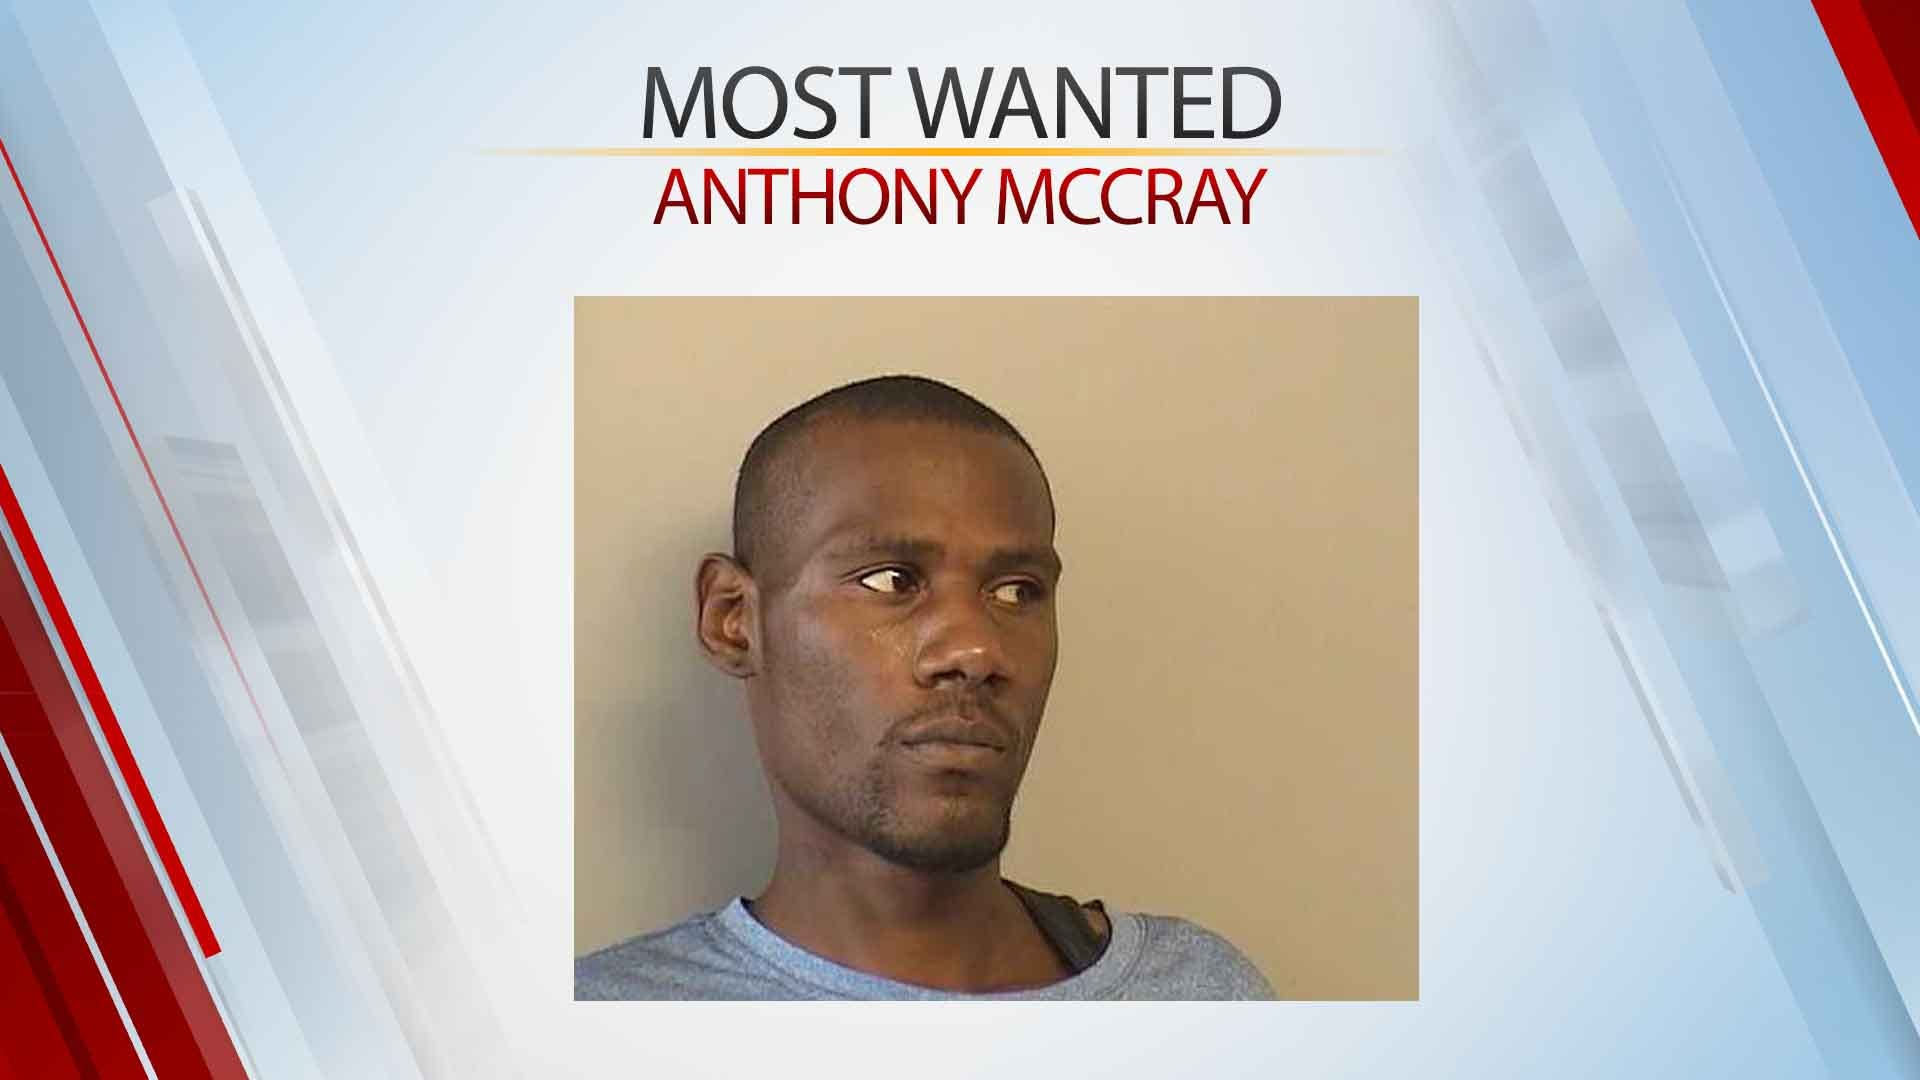 Police Search For Man 'Most Wanted' For Kidnapping, Other Charges